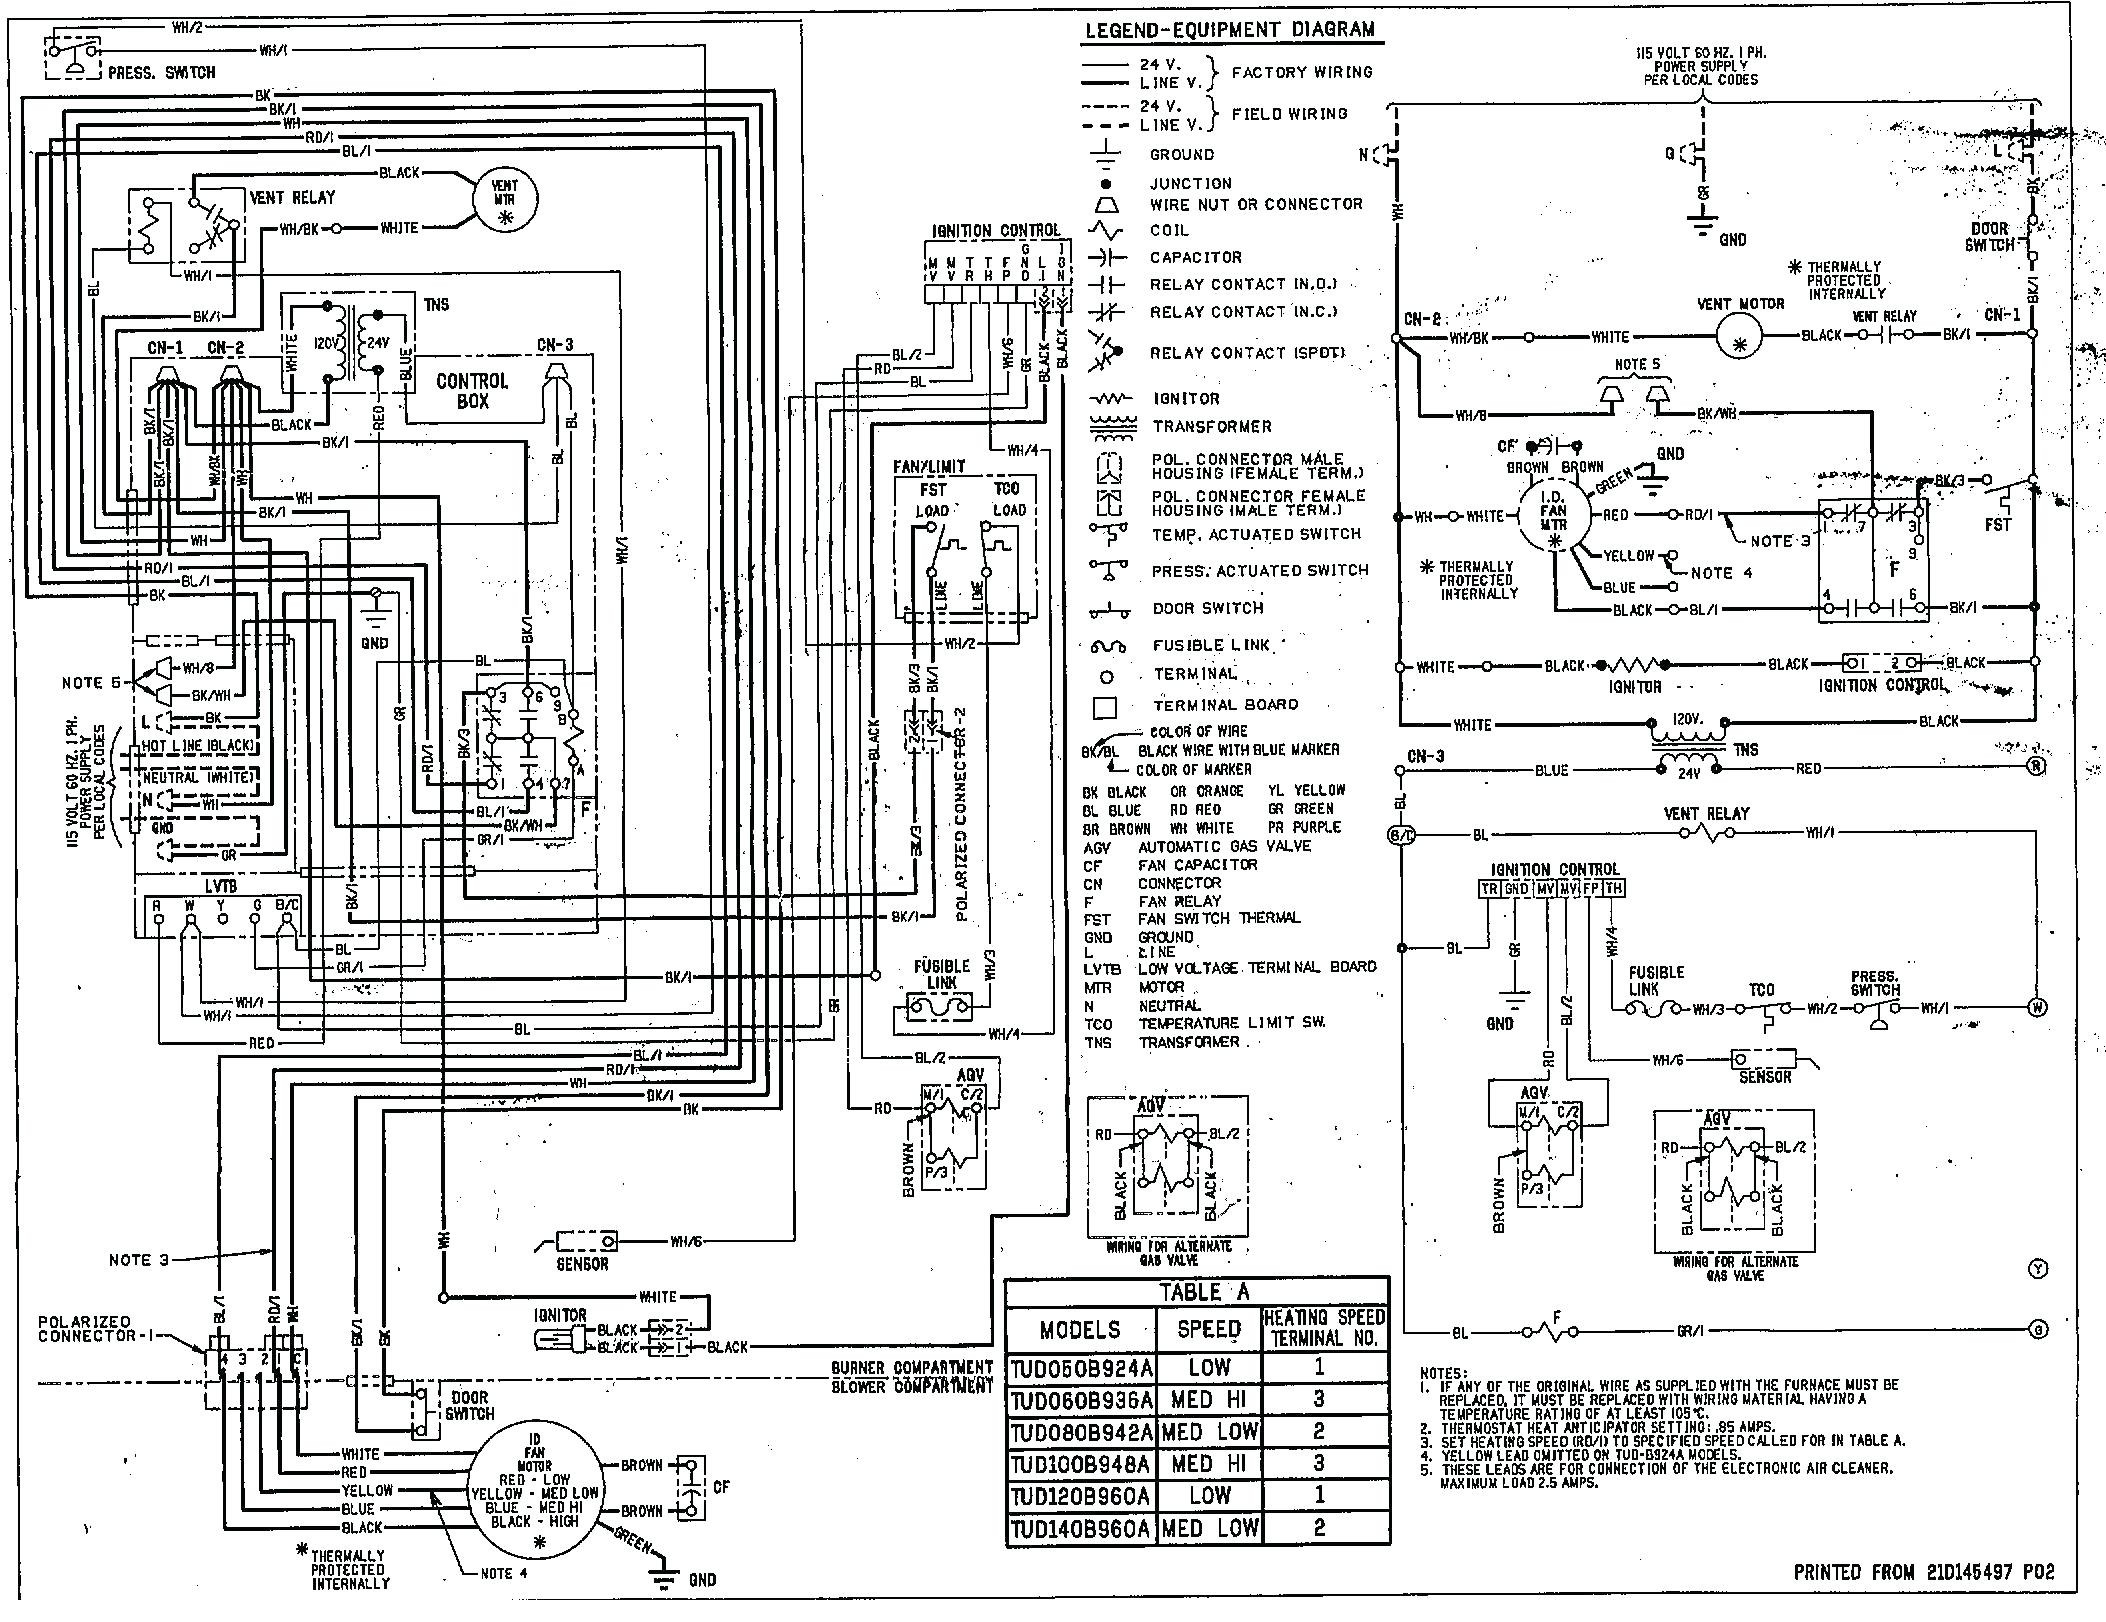 Modine Unit Heater Wiring Diagram Gallery